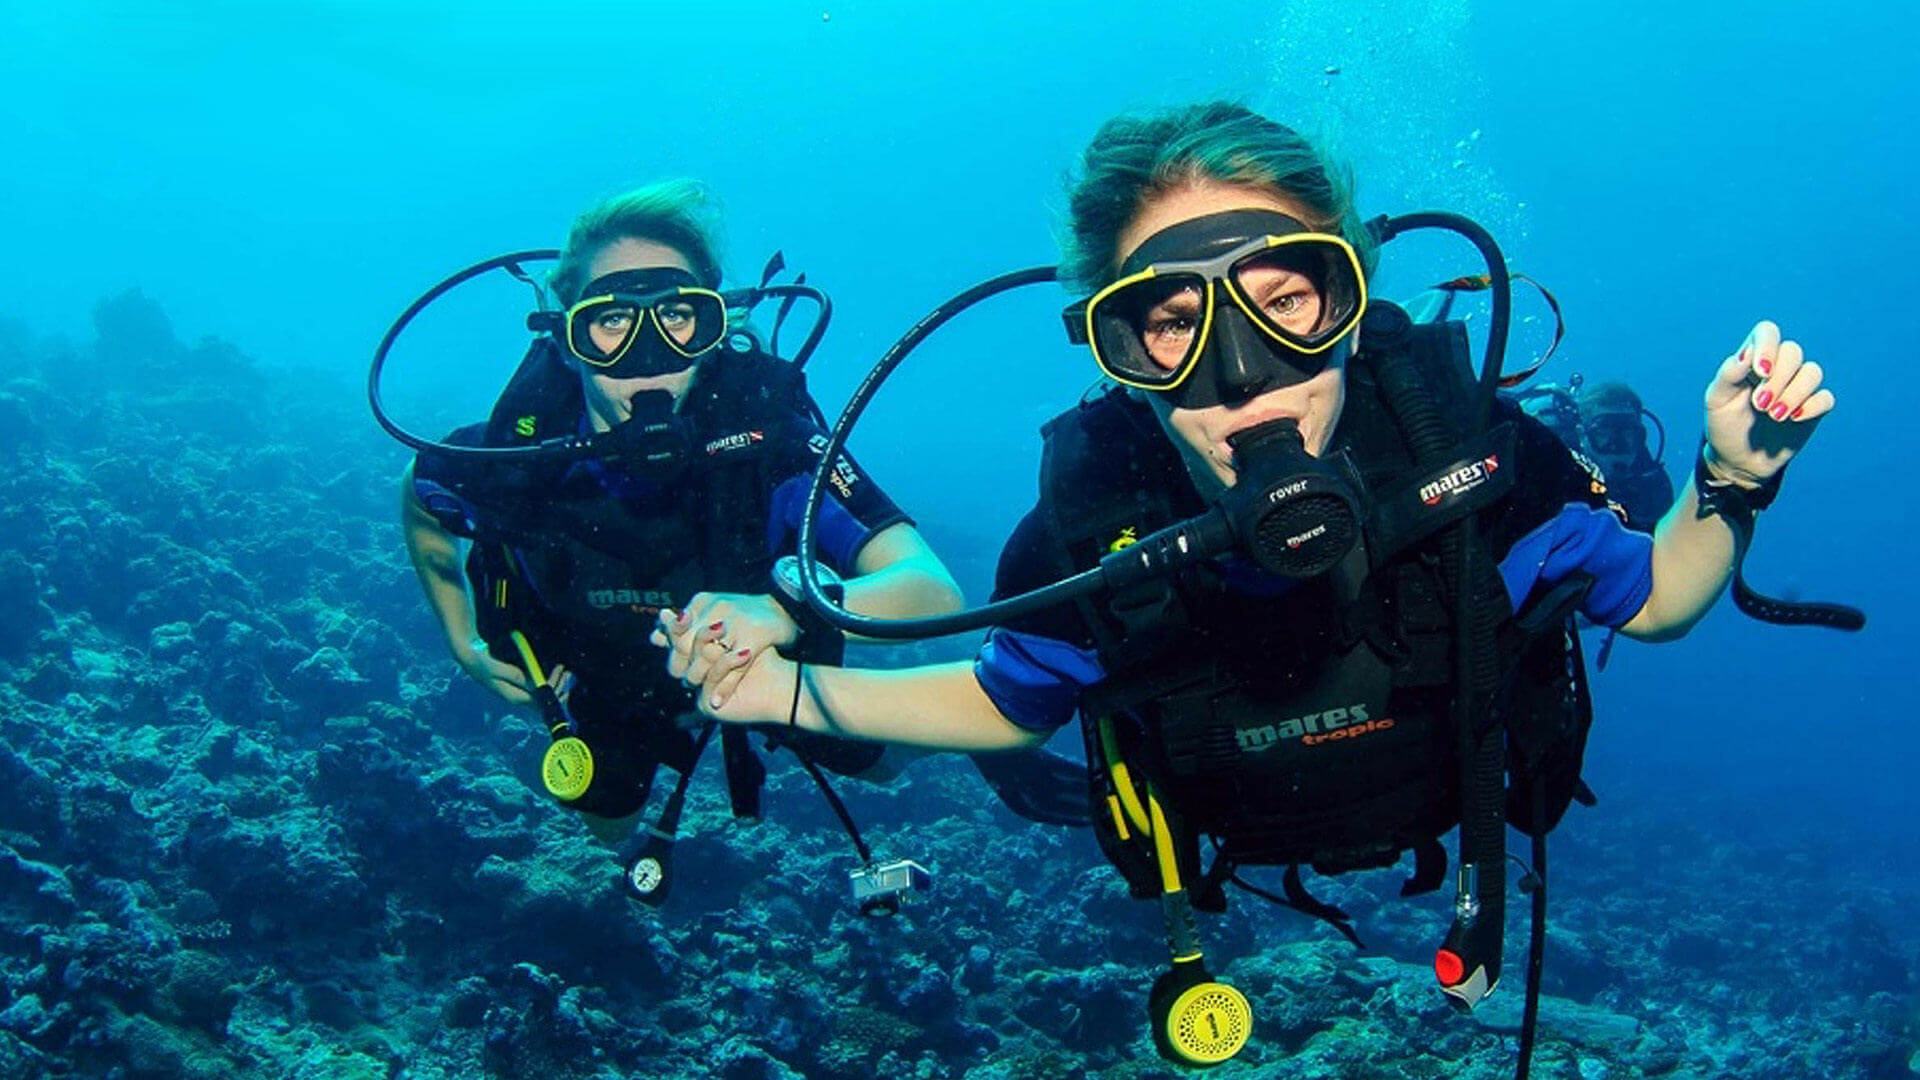 Diving certification in thailand padi courses learn to scuba discover scuba xflitez Images